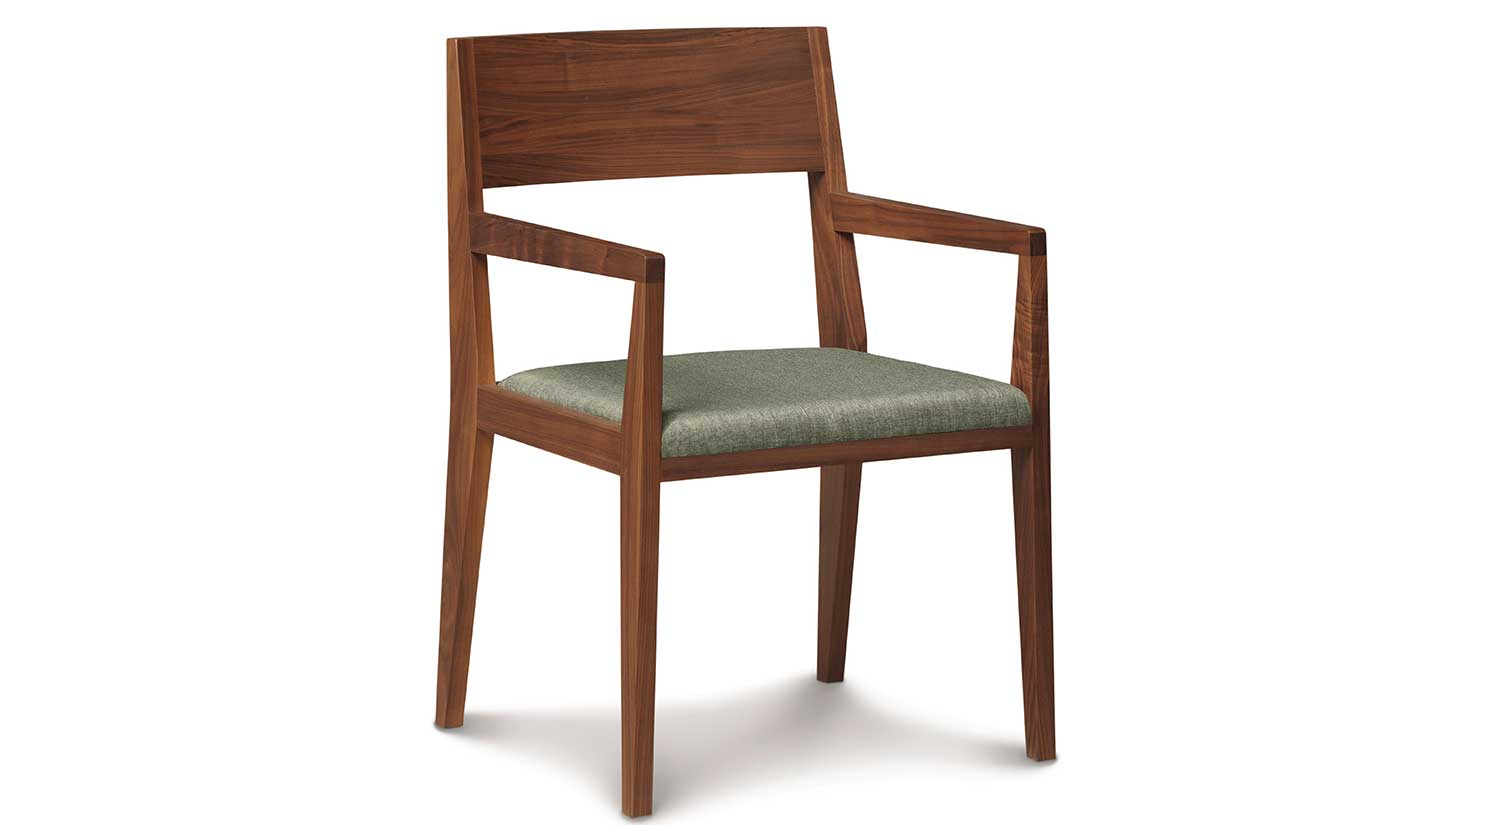 Circle furniture kyoto arm chair wood arm chairs for Wood dining chairs with arms